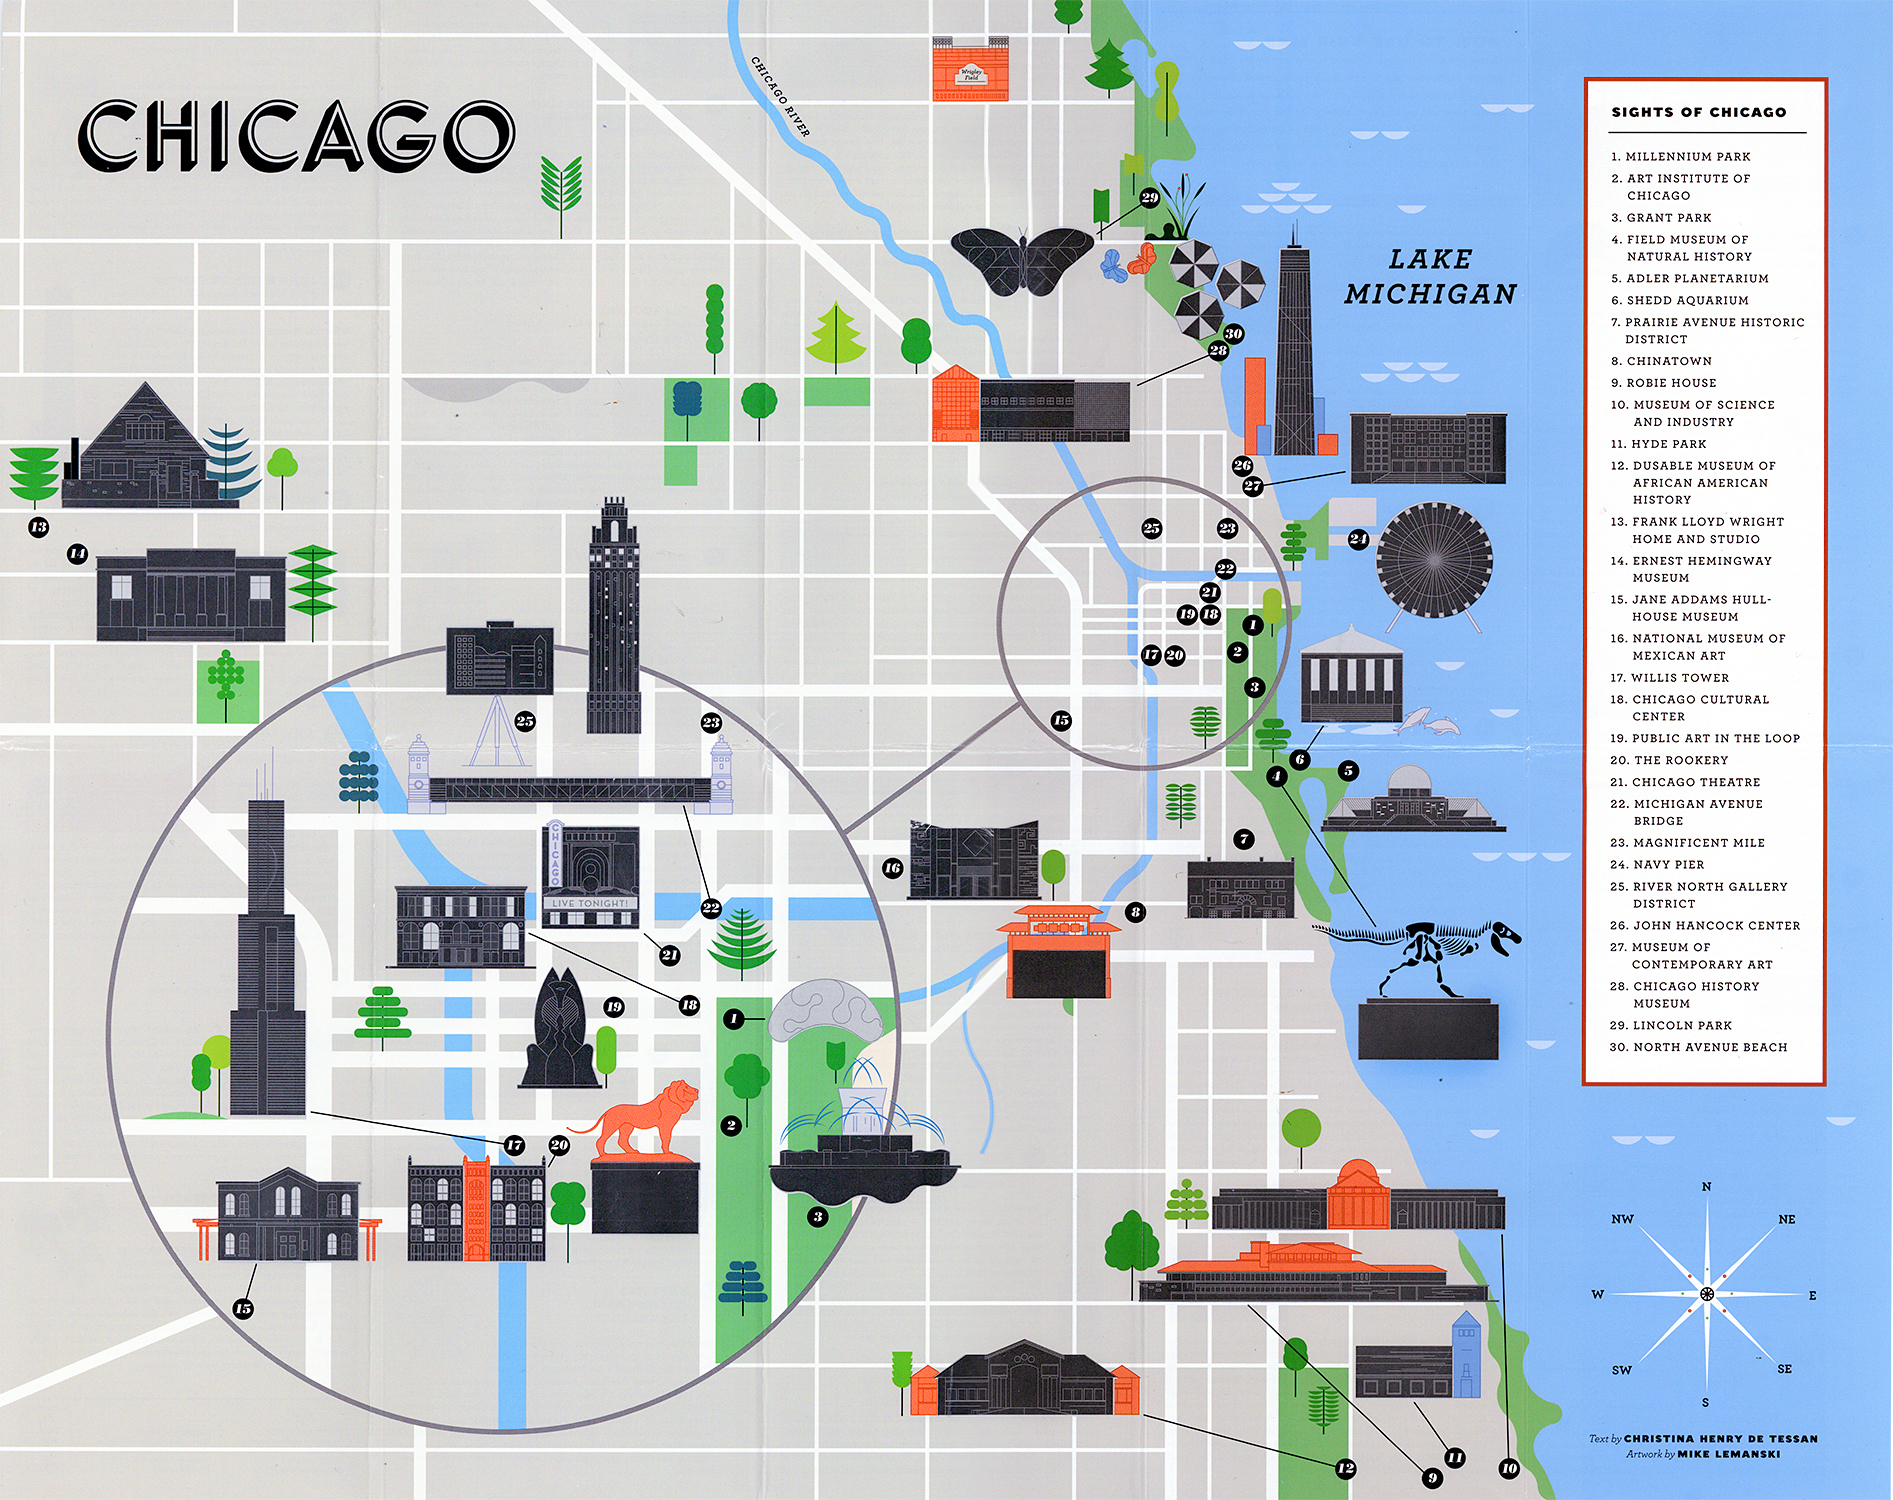 Chicago landmarks map